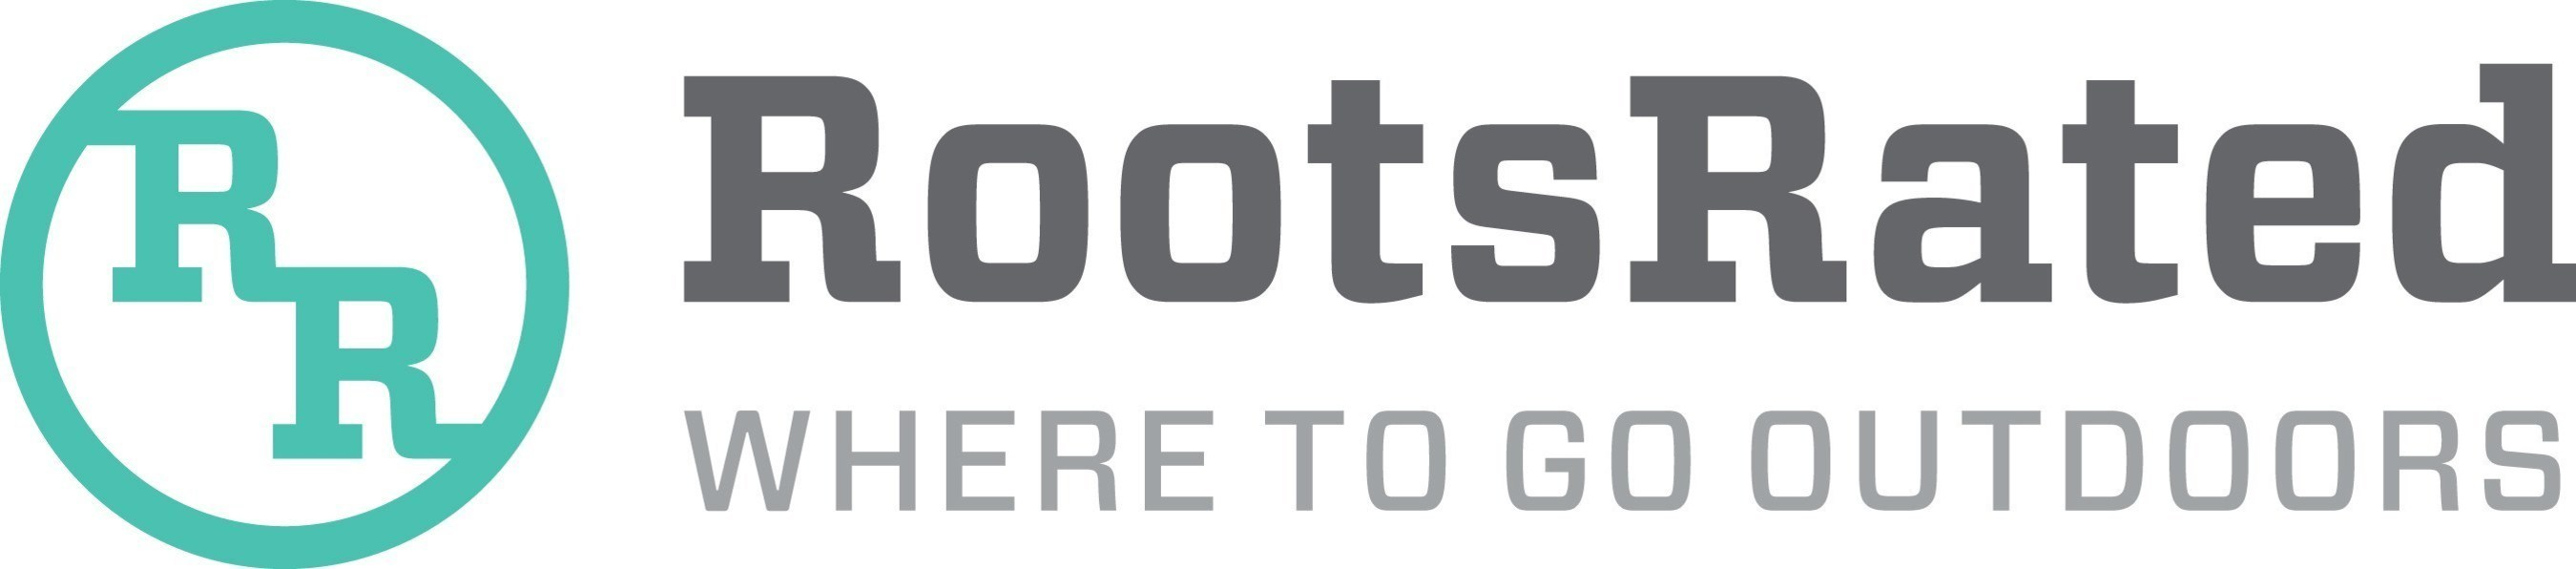 RootsRated.com Logo